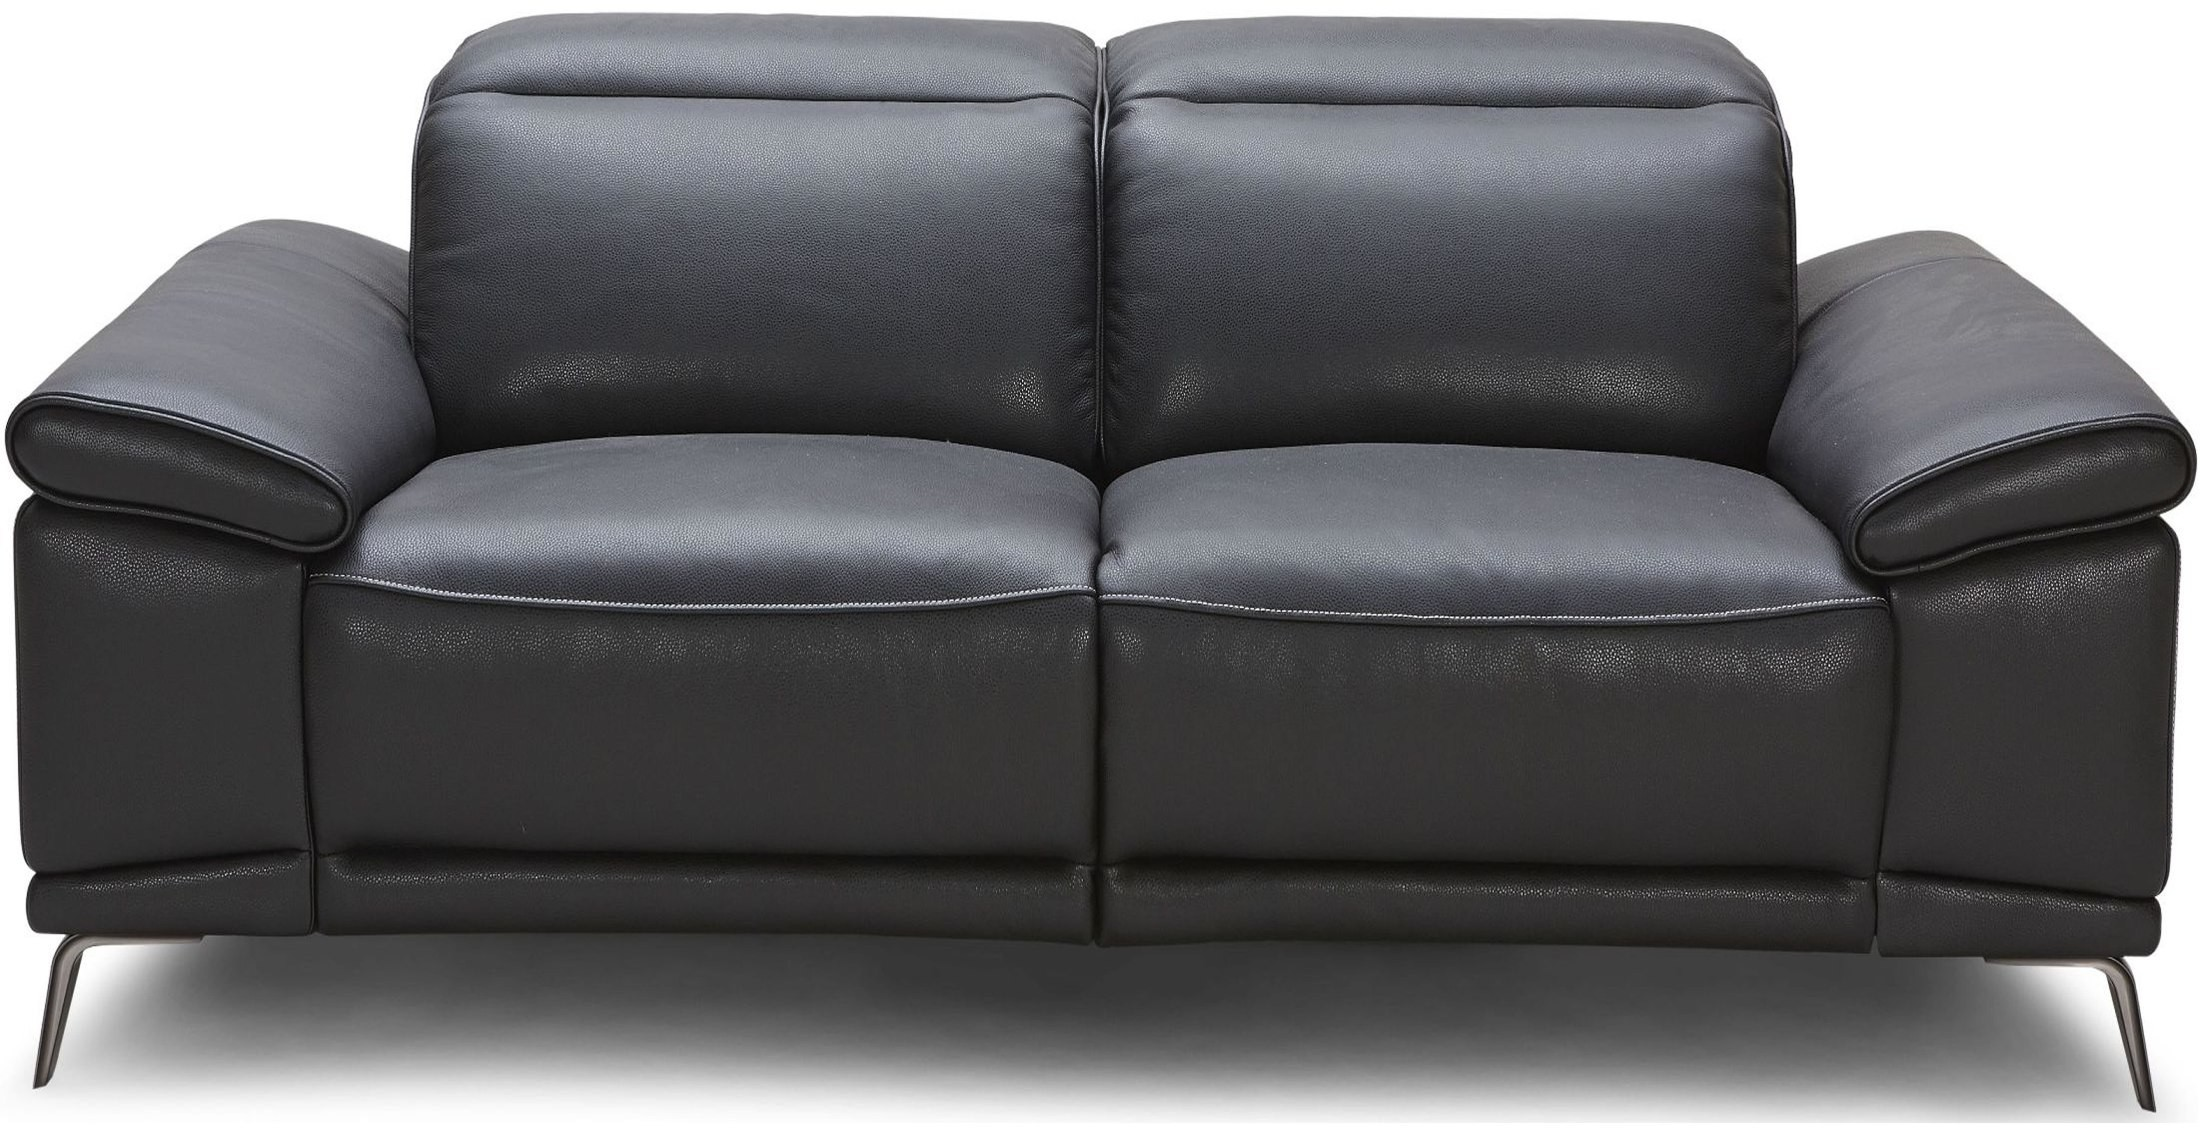 Giovani Black Leather Power Reclining Loveseat From Jnm Coleman Furniture